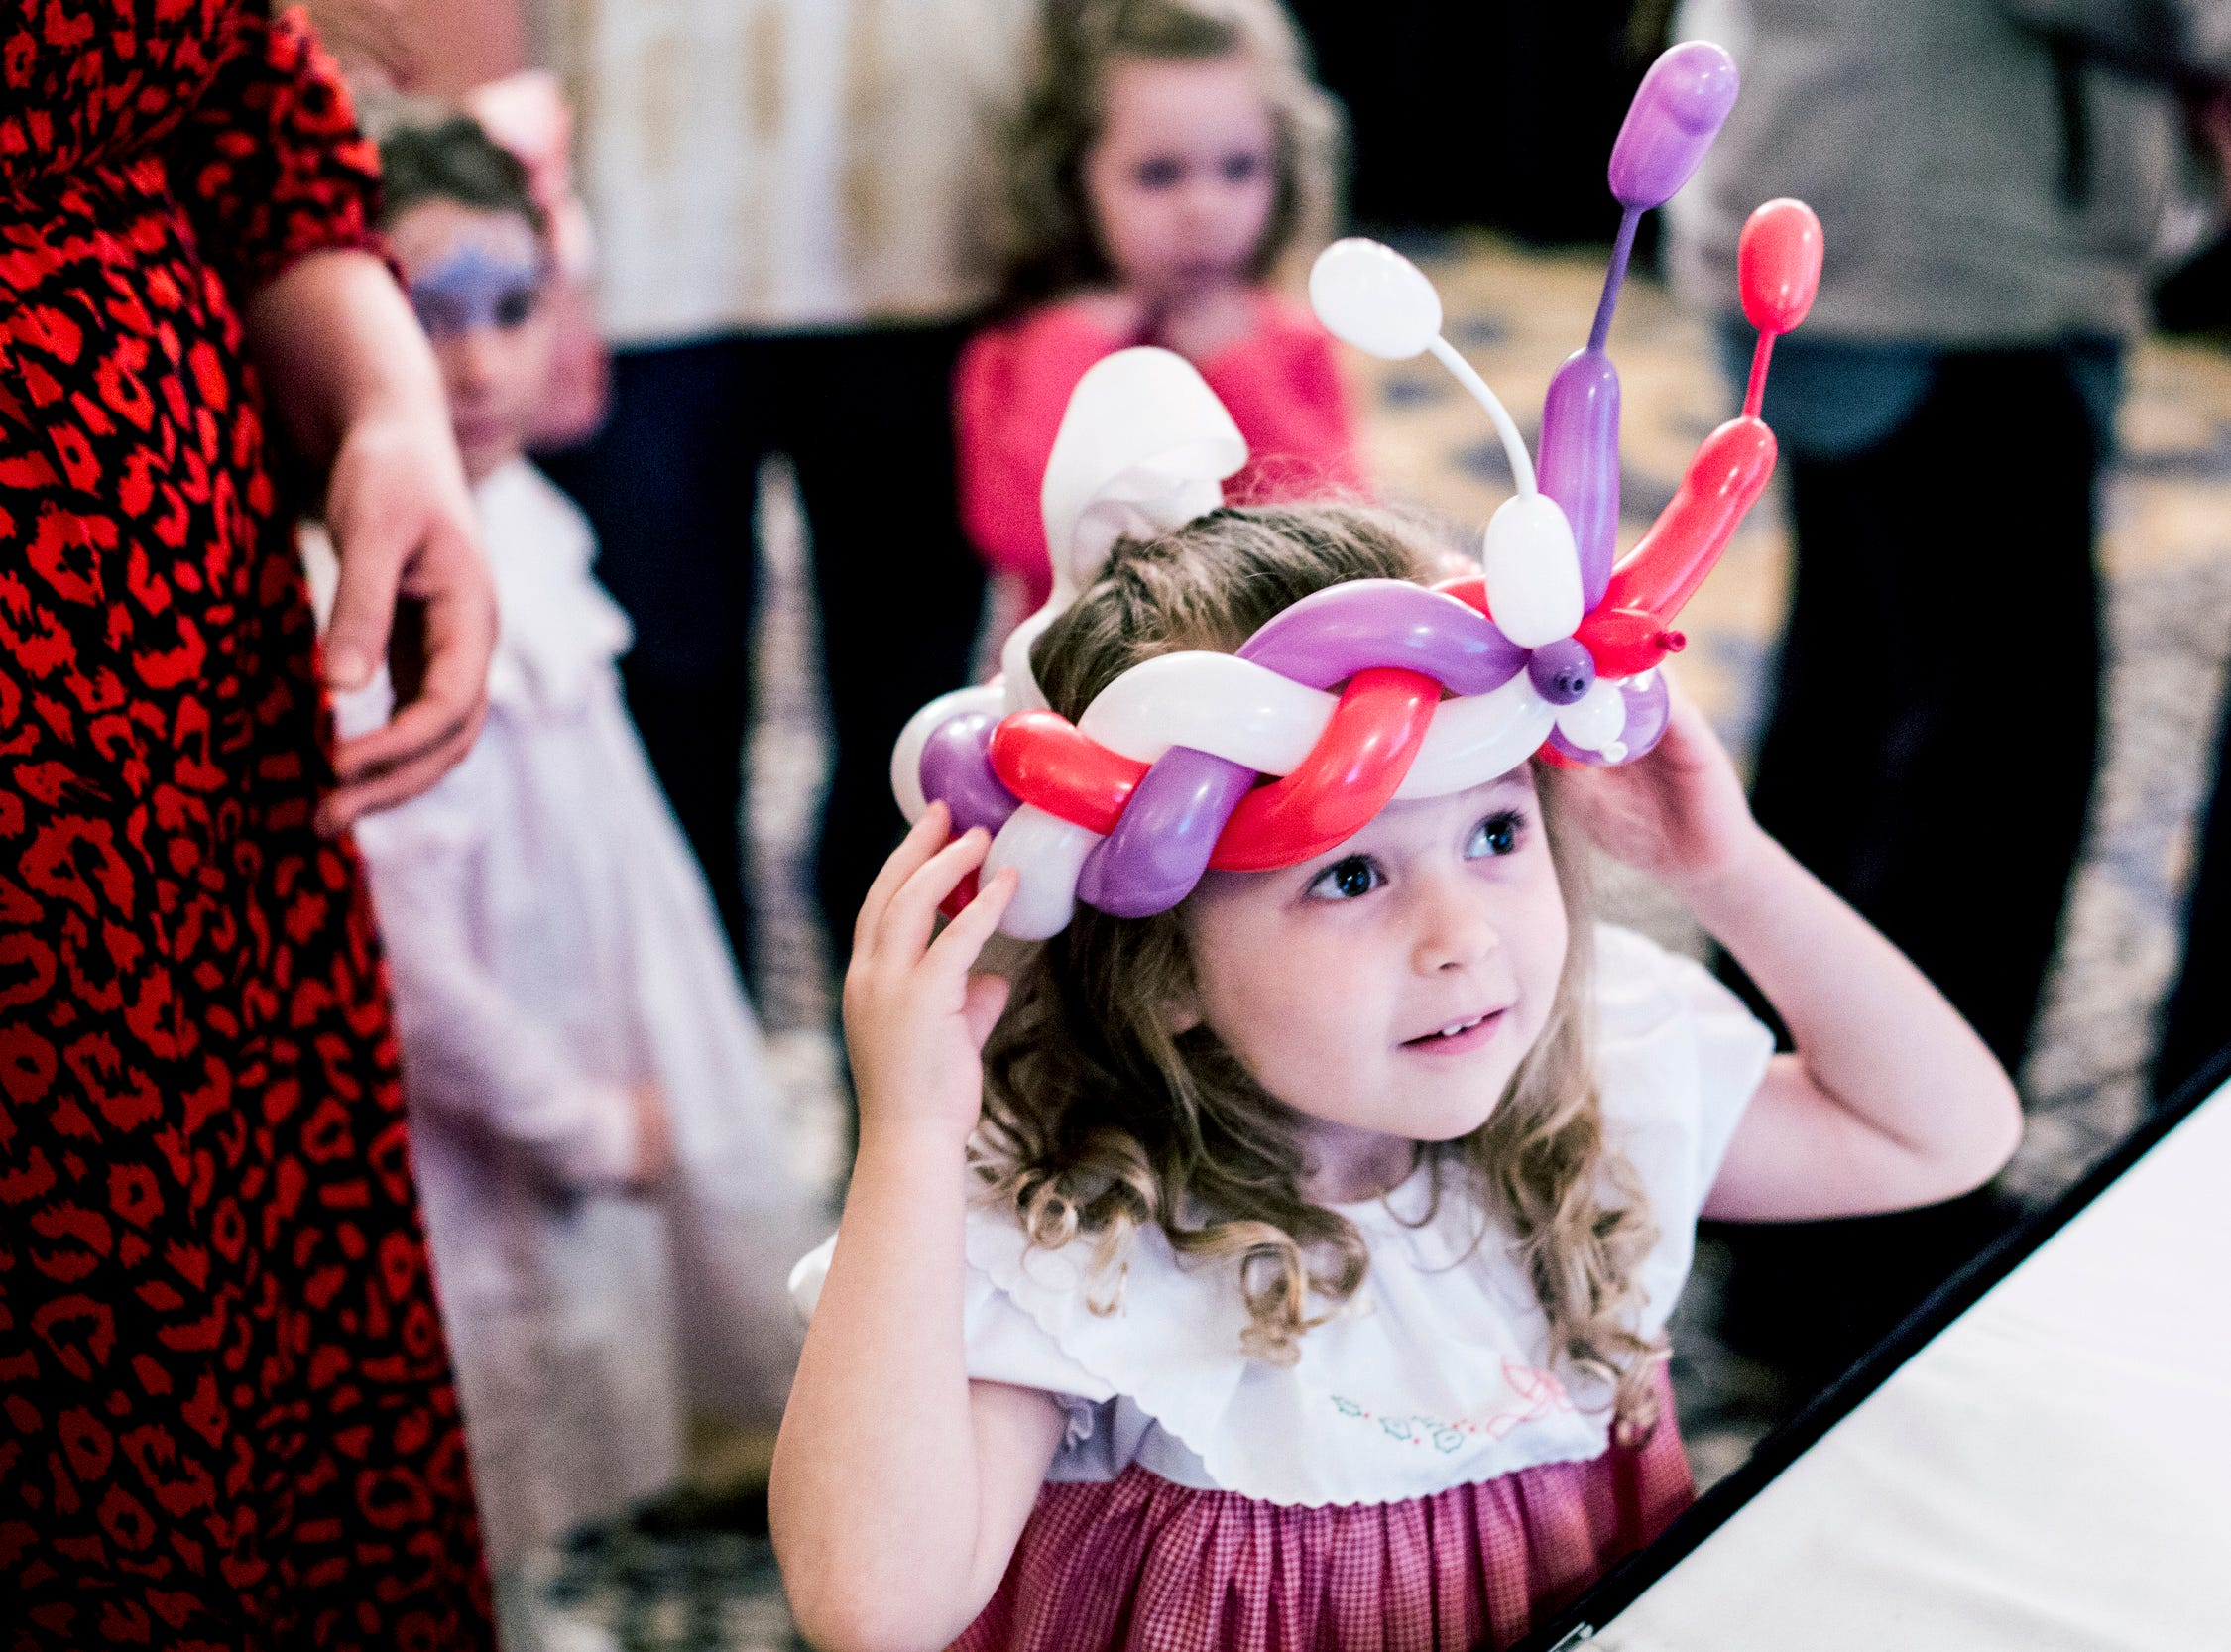 Rose Walker, 4, tries on her balloon crown during the Memphis Jingle Bell Ball Holiday Cookie Party inside of the Continental Ballroom at the Peabody Hotel on Dec. 2, 2018. This was the 30th anniversary of the Jingle Bell Ball.